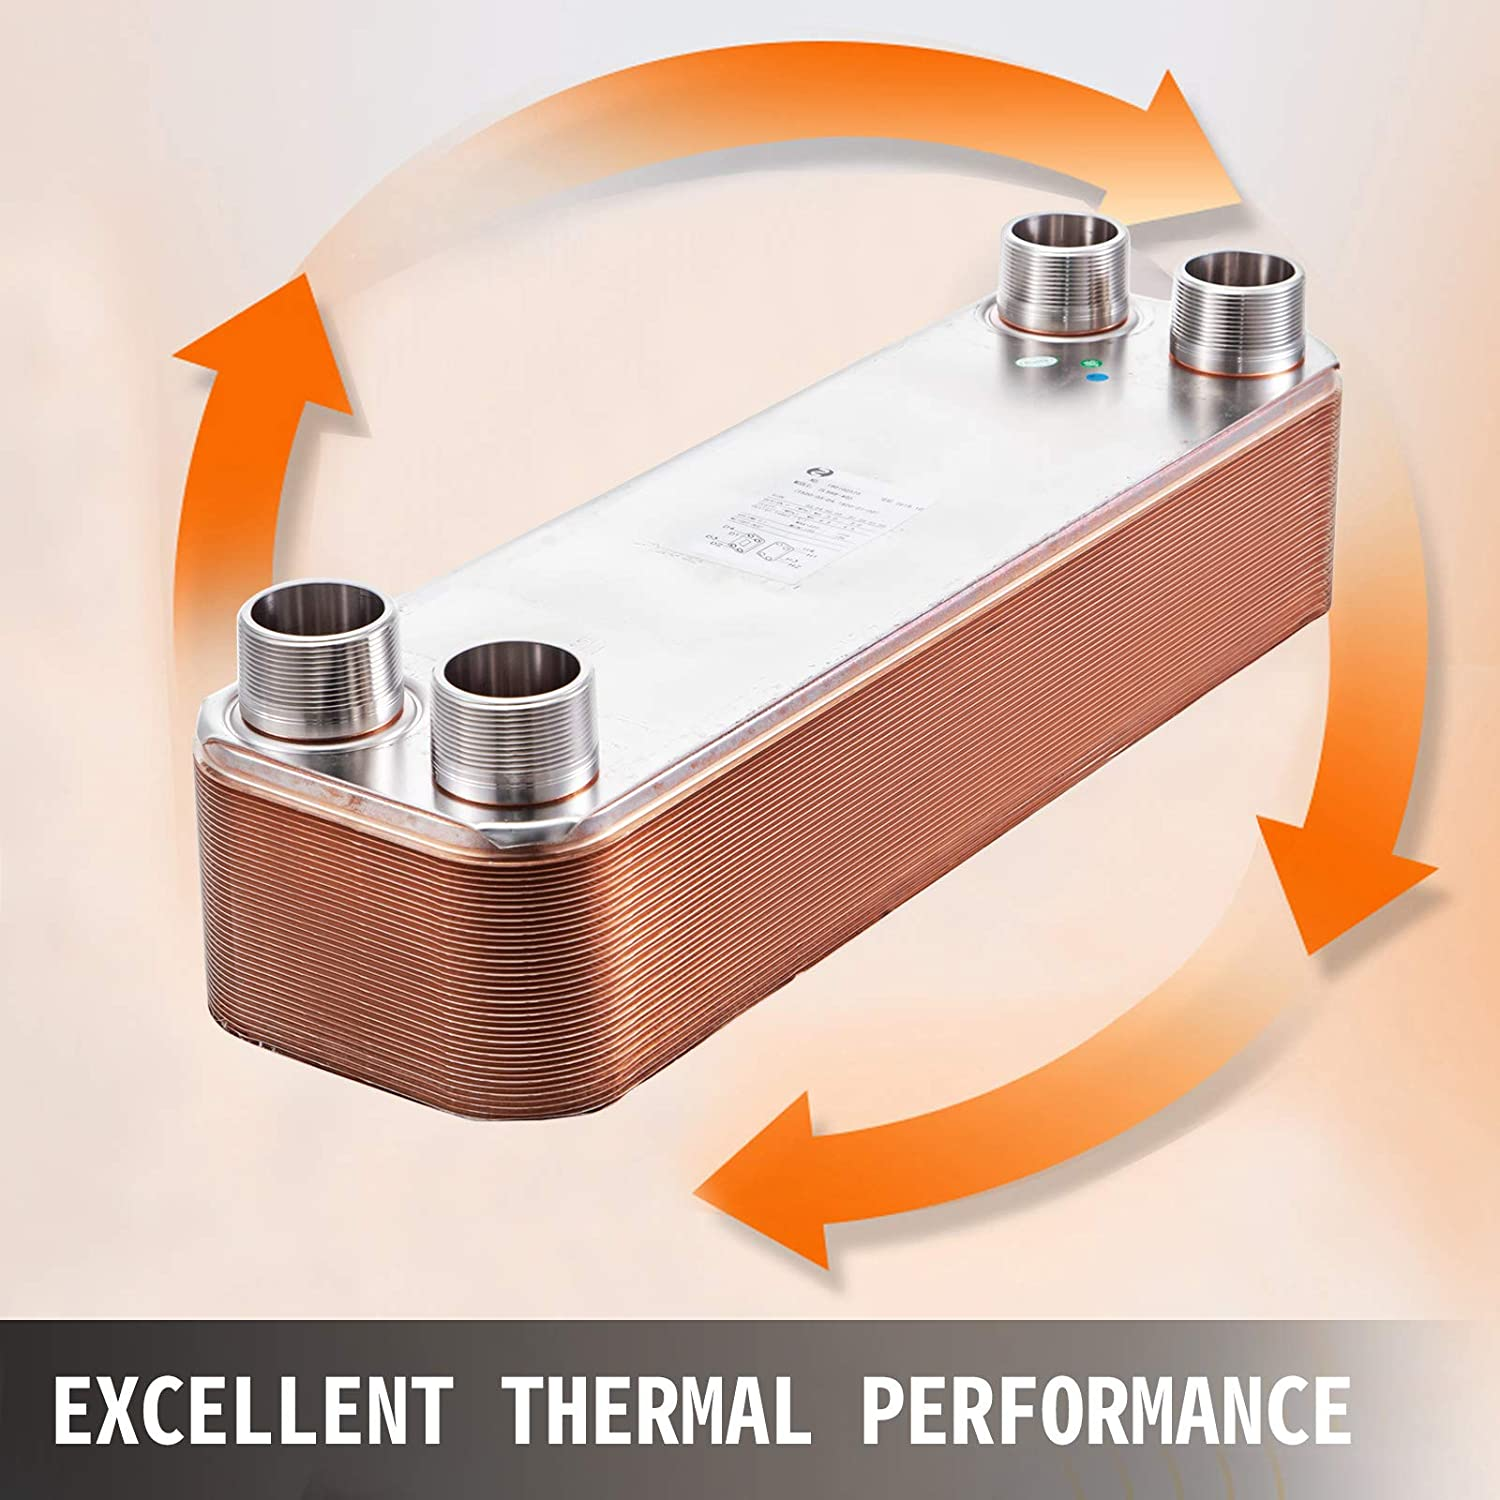 BestEquip Heat Exchanger 5x12 30 Plates Brazed Plate Heat Exchanger 316L 1 MPT Heat Exchanger Beer Wort Chiller for Hydronic Heating